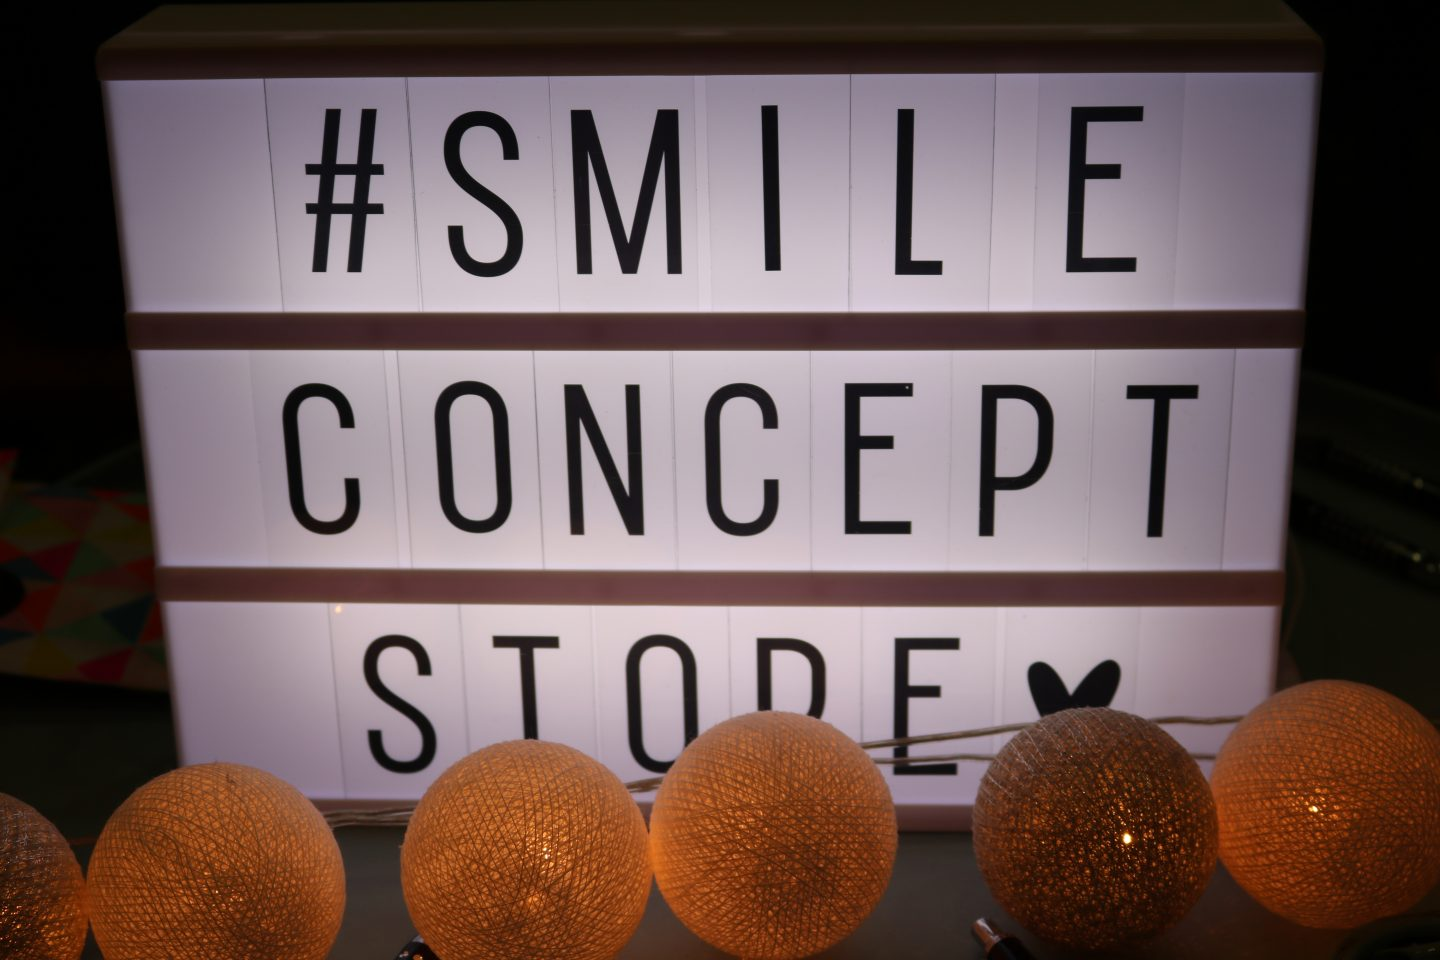 Smile concept store 2 Beautyful Bloggers MeetUp